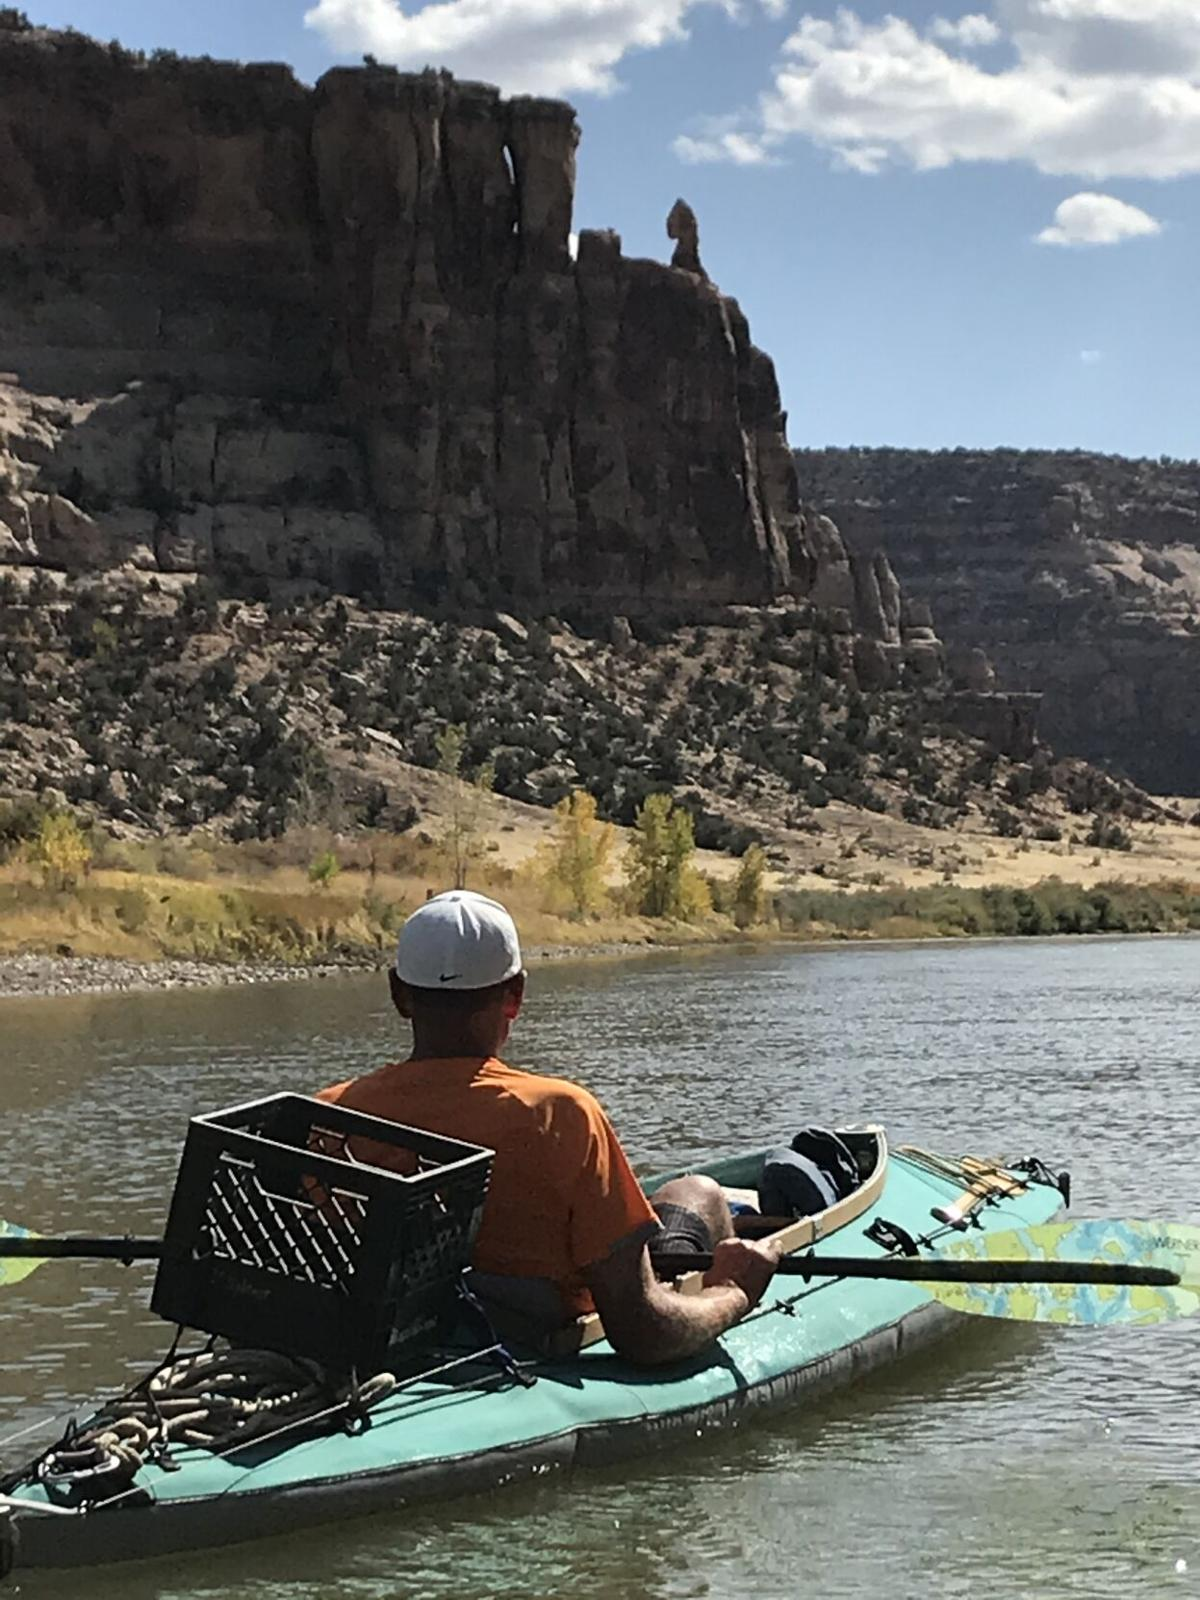 OUTDOORS: Find fast, slow or flat water